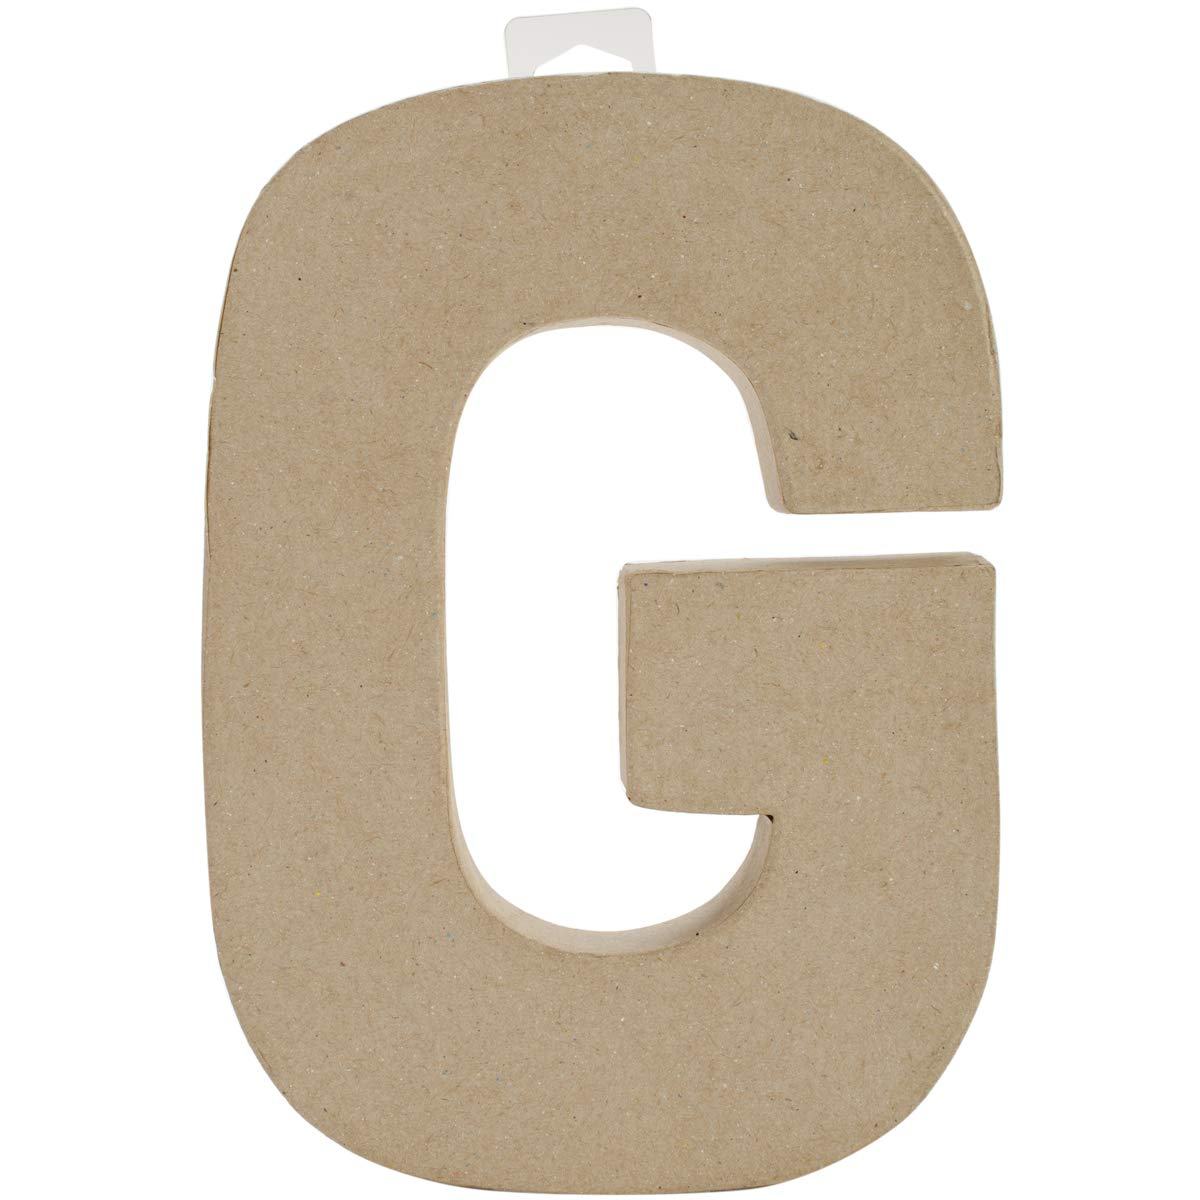 Paper Mache Letter G 8 X 5.5 Inches (12 Pack)